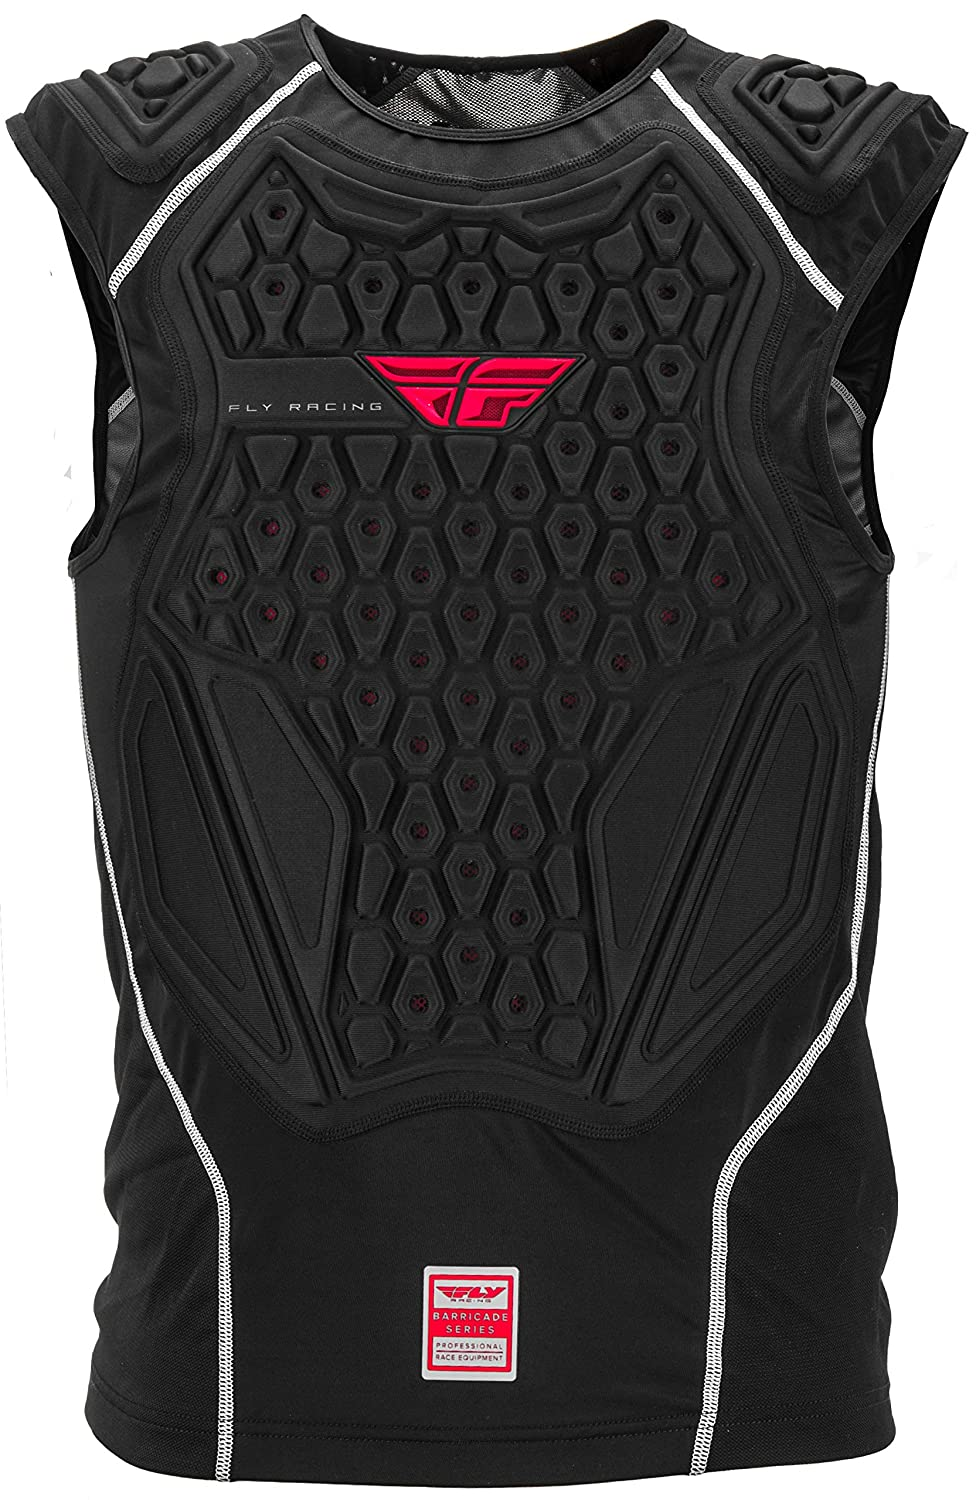 Fly Racing Barricade Pullover Protective Vest - Adult (LG/XL) 360-970